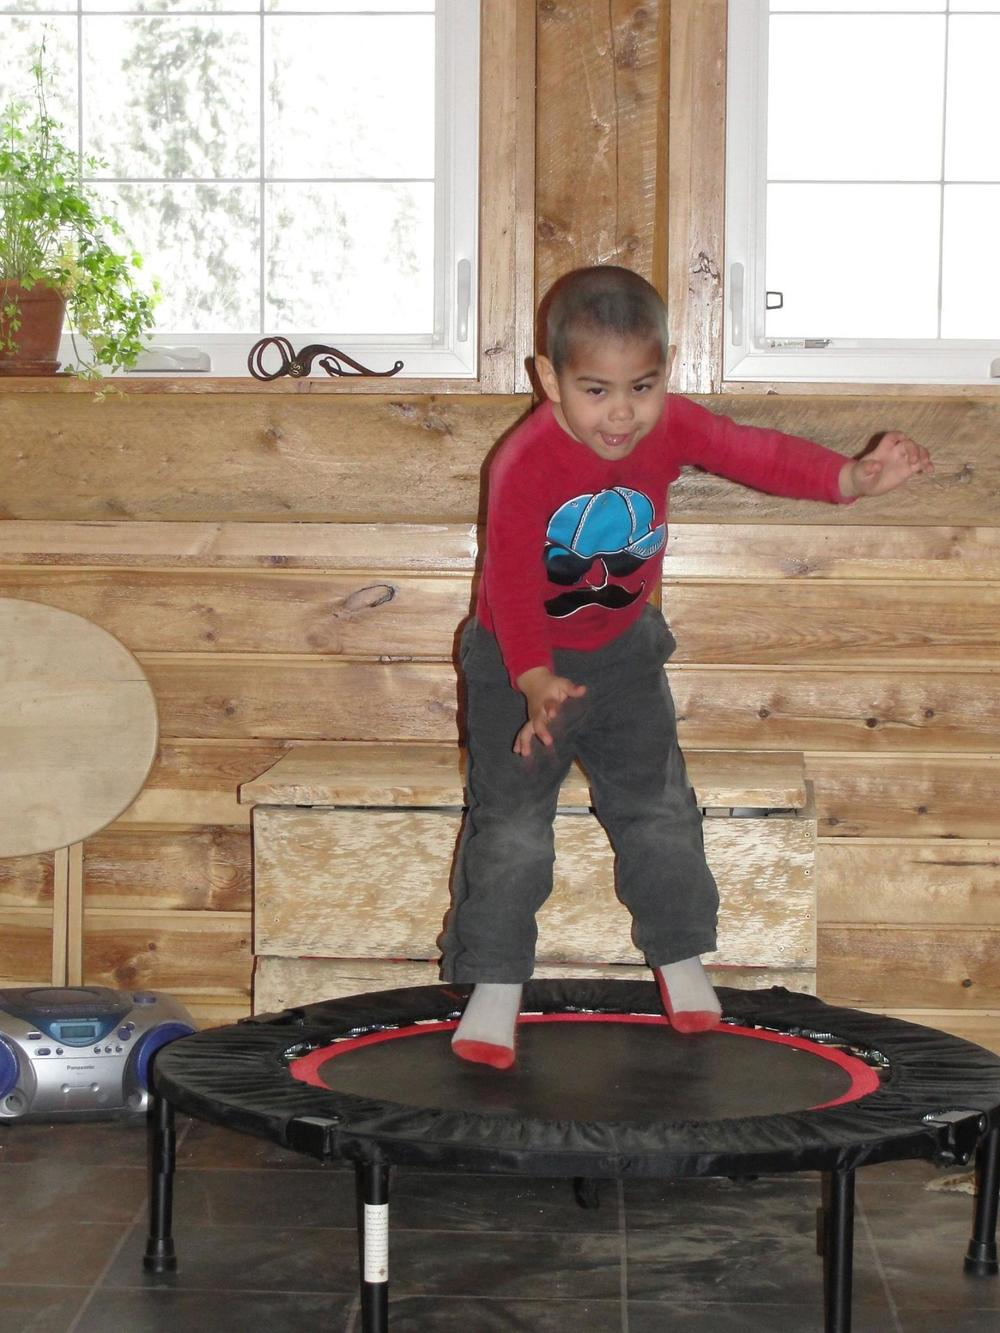 2015-04-01 at Grandma Laurel's - on the rebounder.jpg